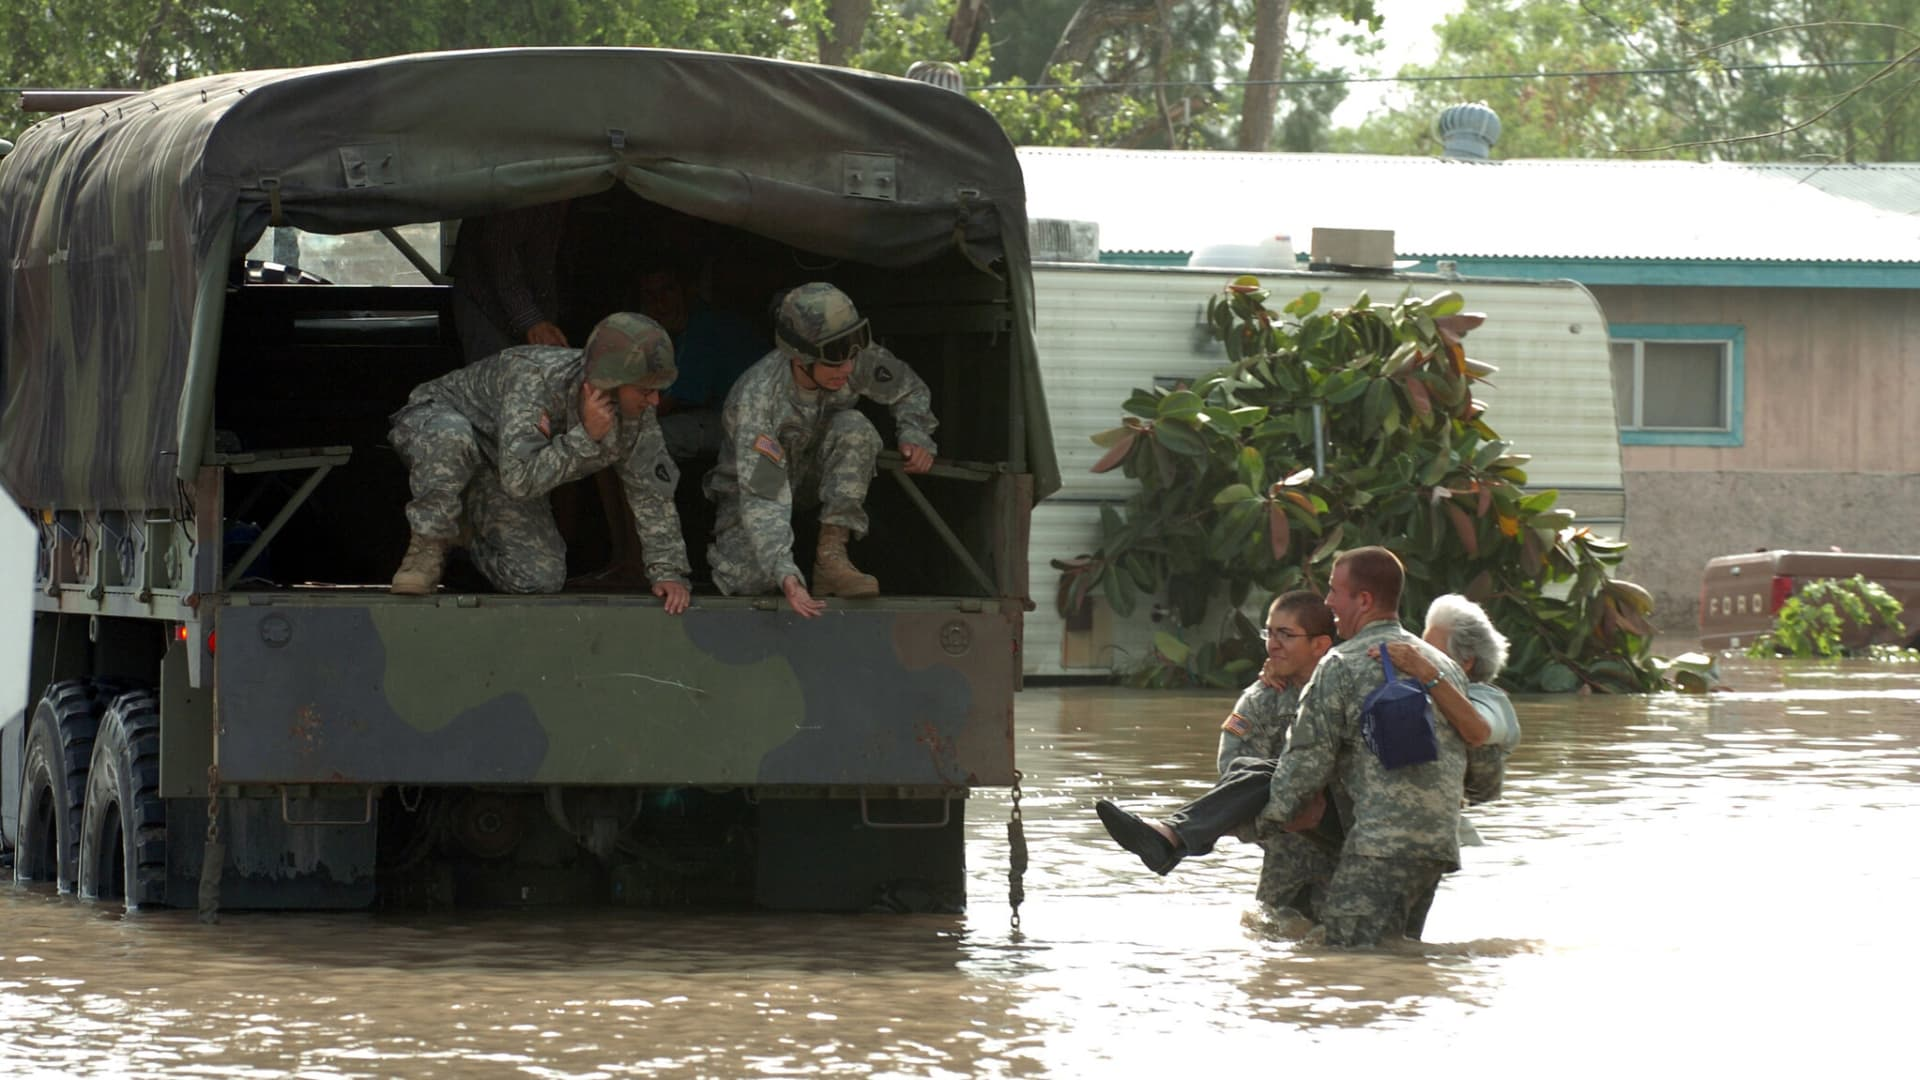 Texas National Guard Pvt. Mark Rivera of Co. A, 72nd Infantry Brigade, and Pvt. 1st Class Joseph Davora, Co. A, 1-41 Infantry Regiment, carry a woman stranded by flood waters to a waiting truck, where Pvt. John Paul Borrego and Pvt. 1st Class Christopher Culbelier, wait.